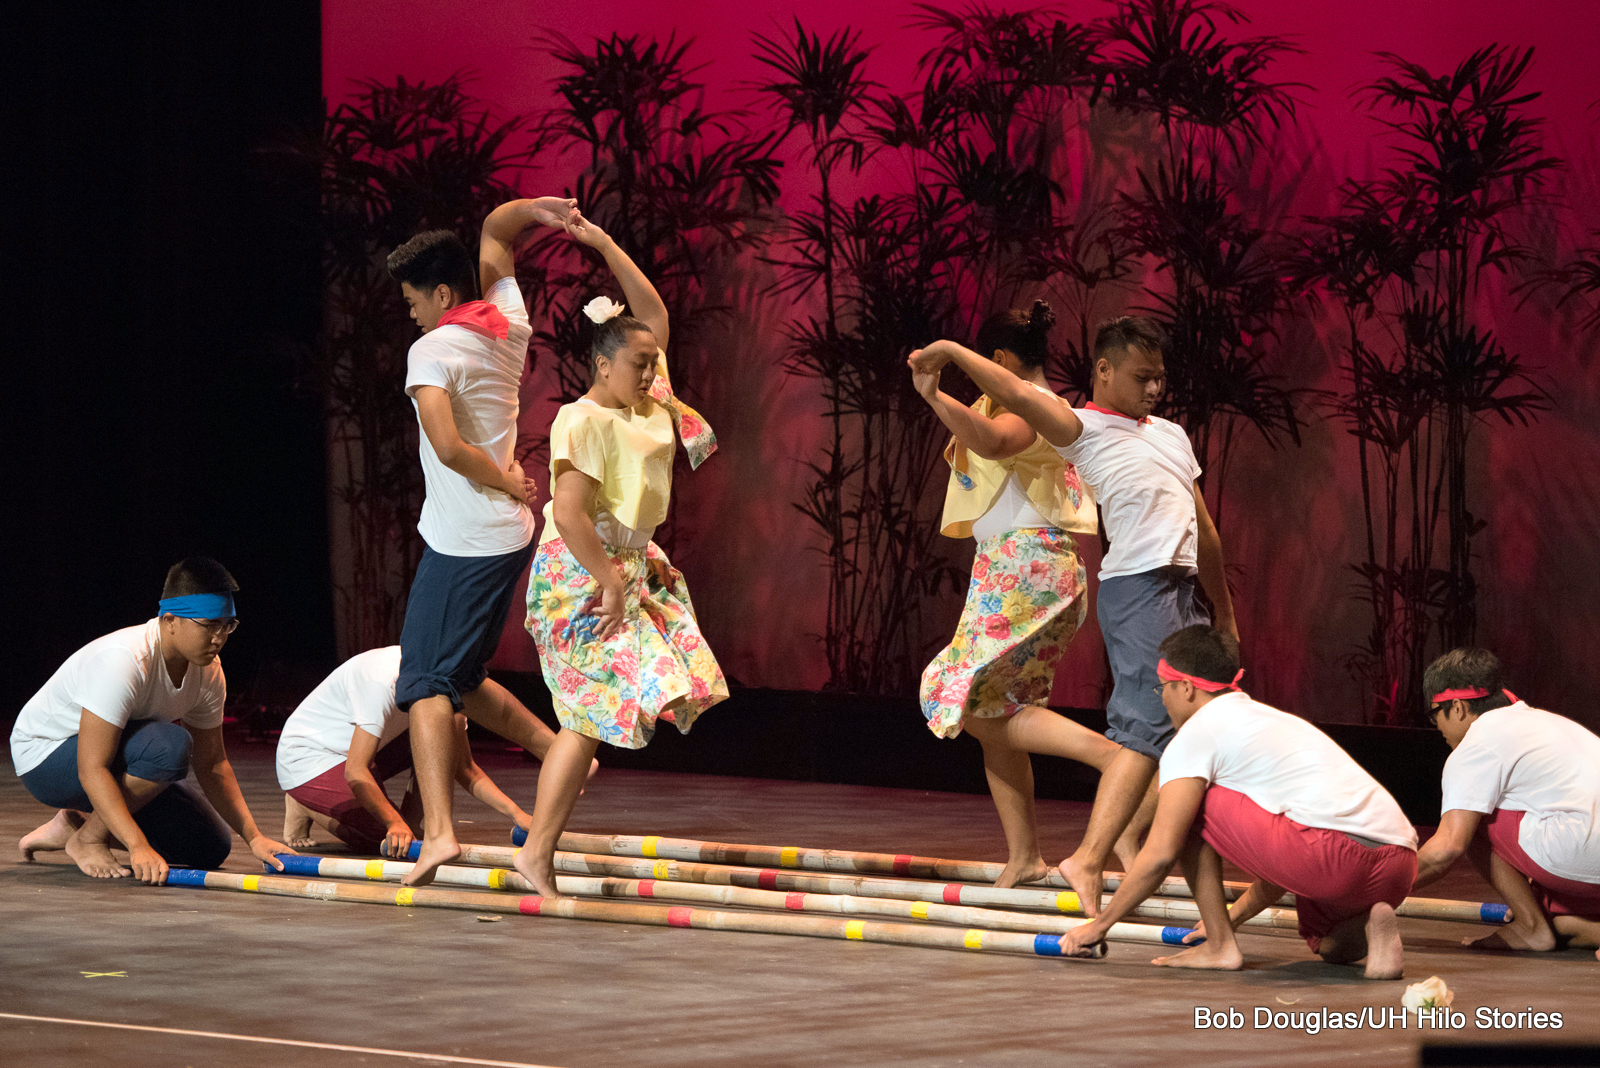 Group doing tinikling dance, men with long bamboo poles lengthwise on floor, beating rhythm while two couples dance in and out of moving bamboo.